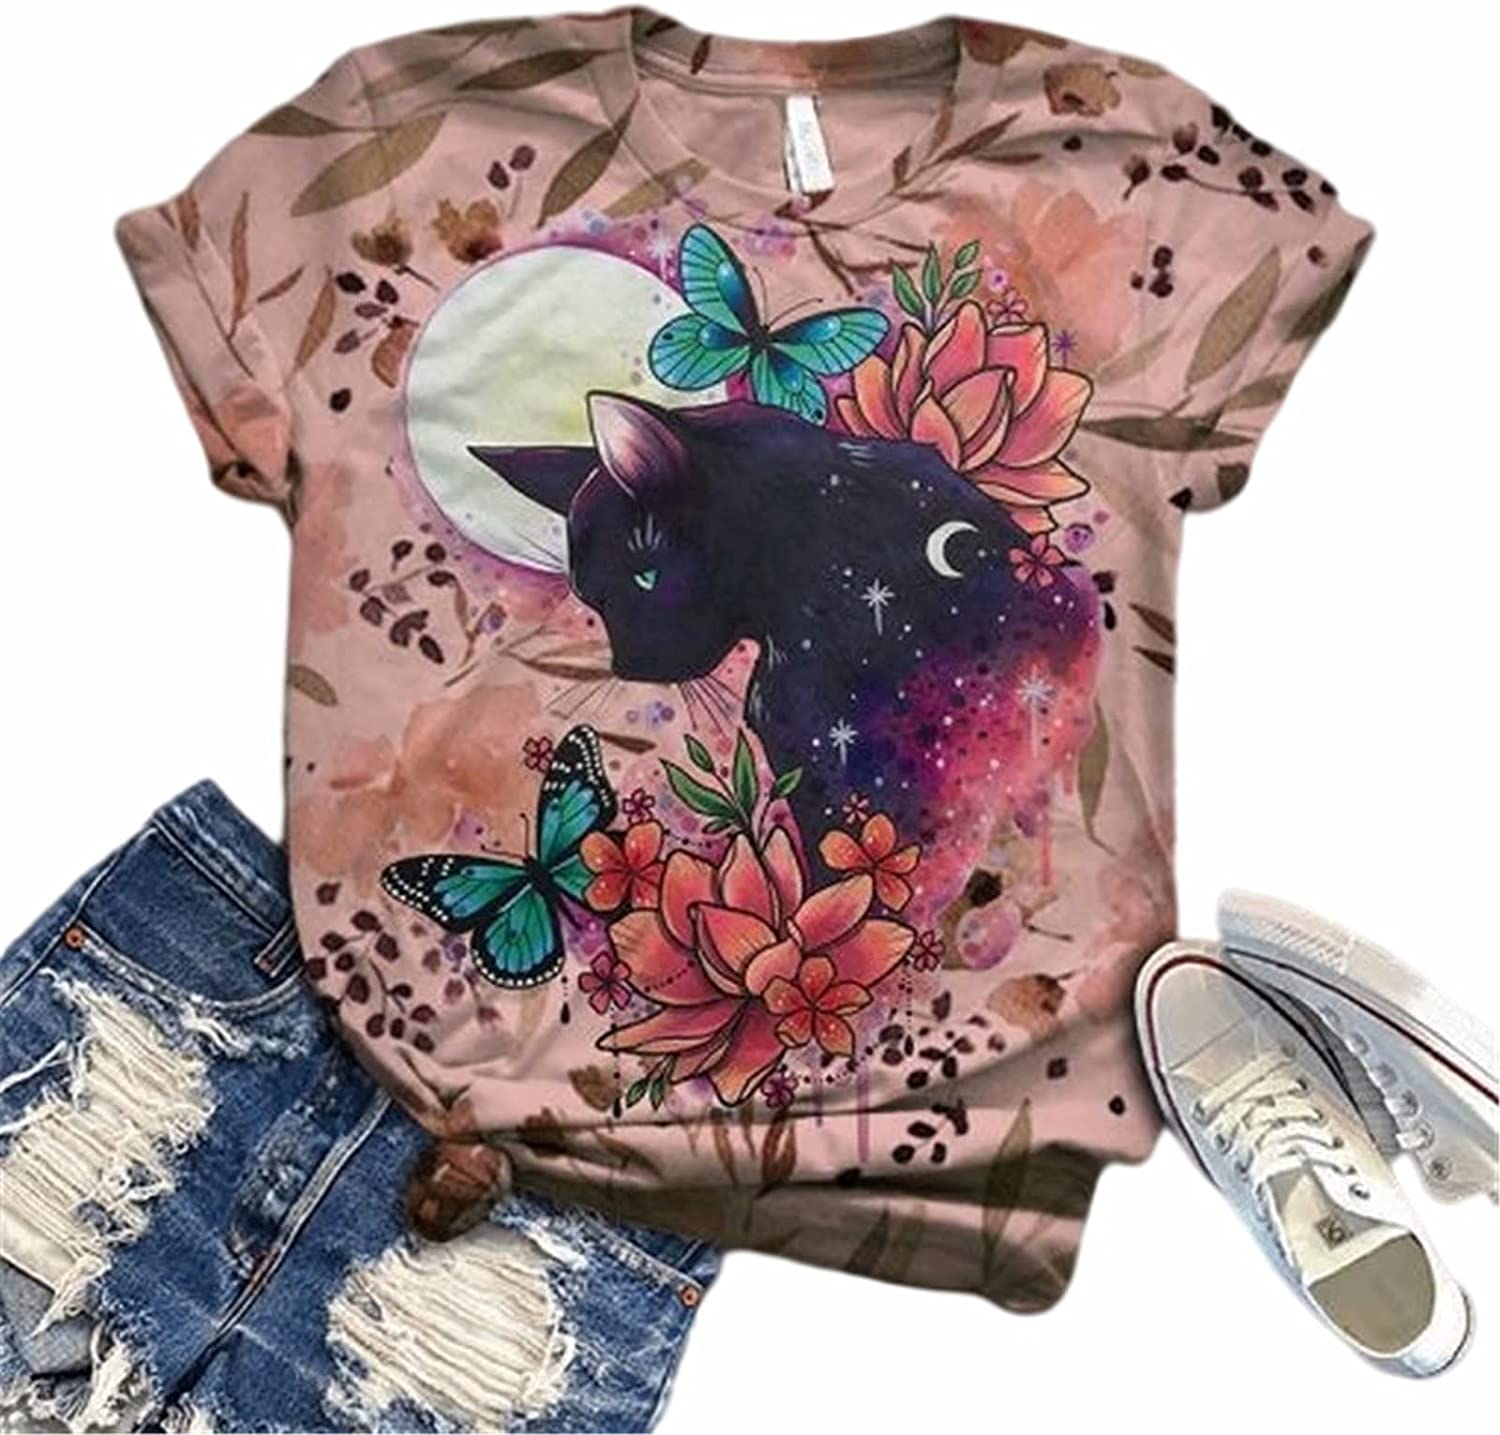 Hami House Graphic Tees for Women Casual Tops Novtly Pattern 3D Animal Print Short Sleeve O-Neck Tops Plus Size Blouse